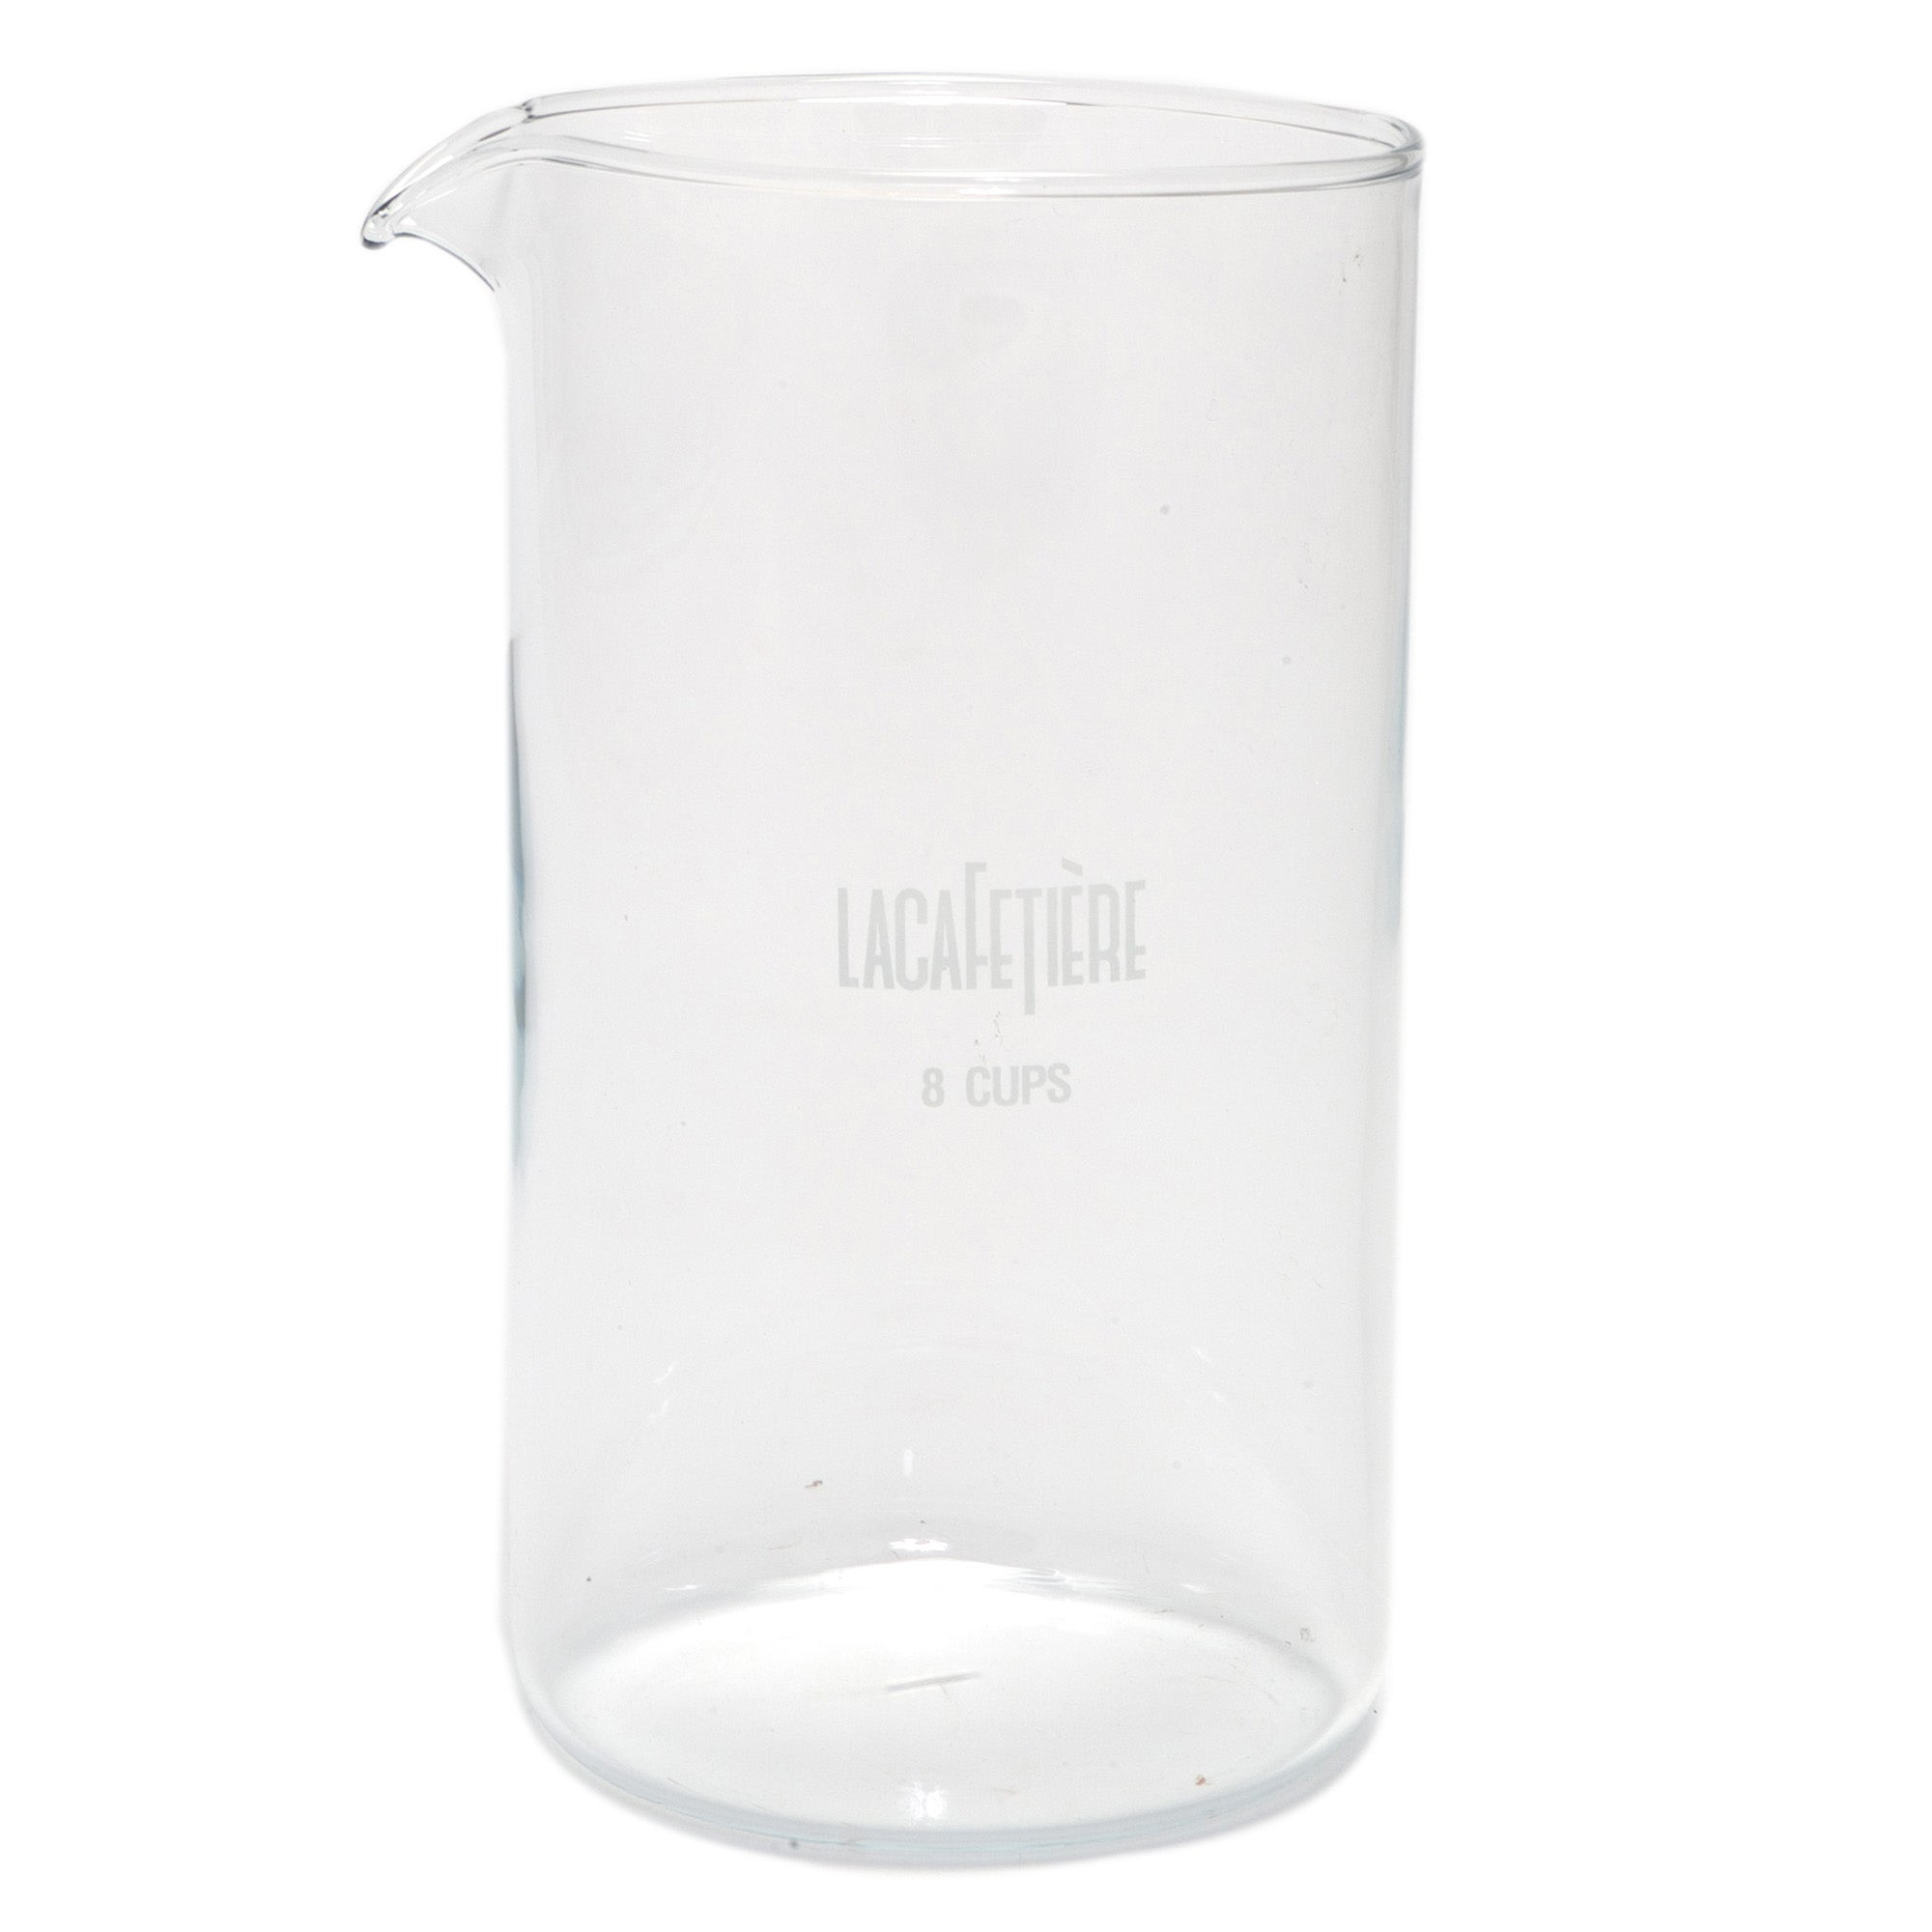 La Cafetiere 8 Cup Spare Glass